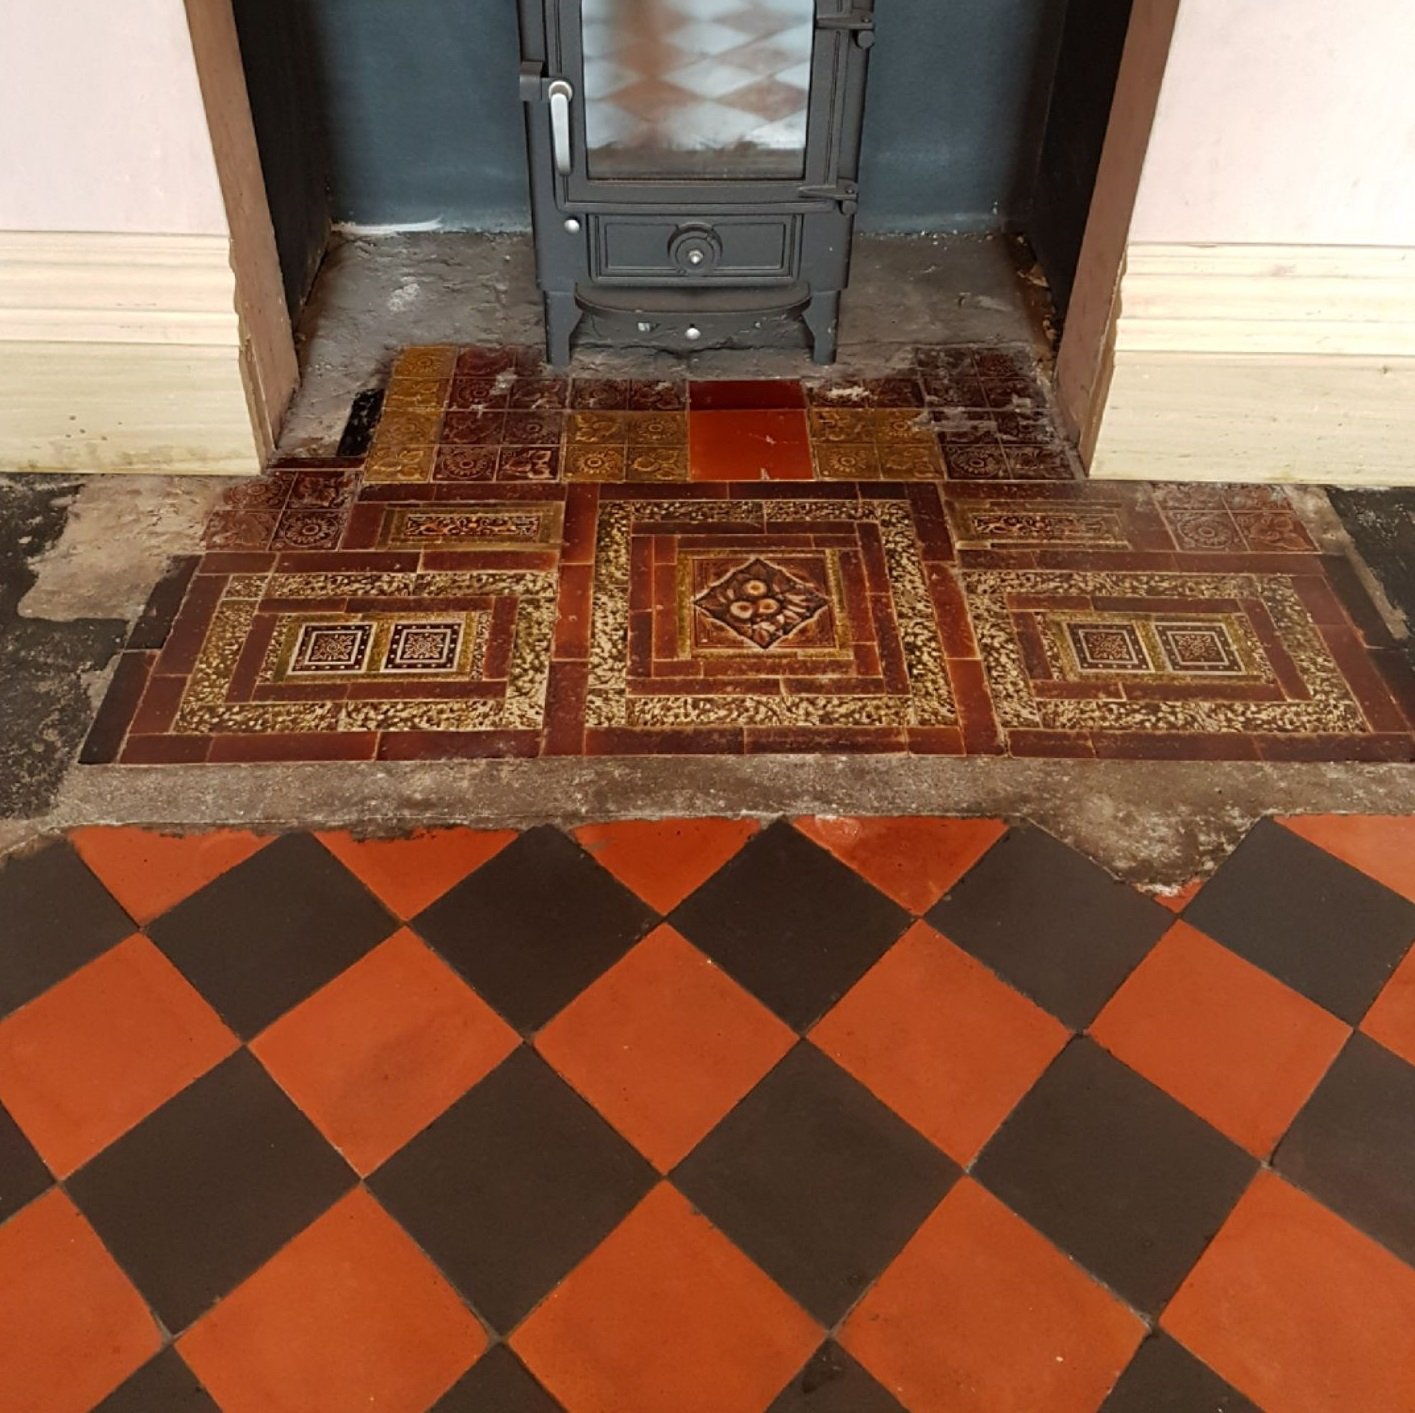 Old Ceramic Tiled Fireplace Hearth After Cleaning Whaley Bridge